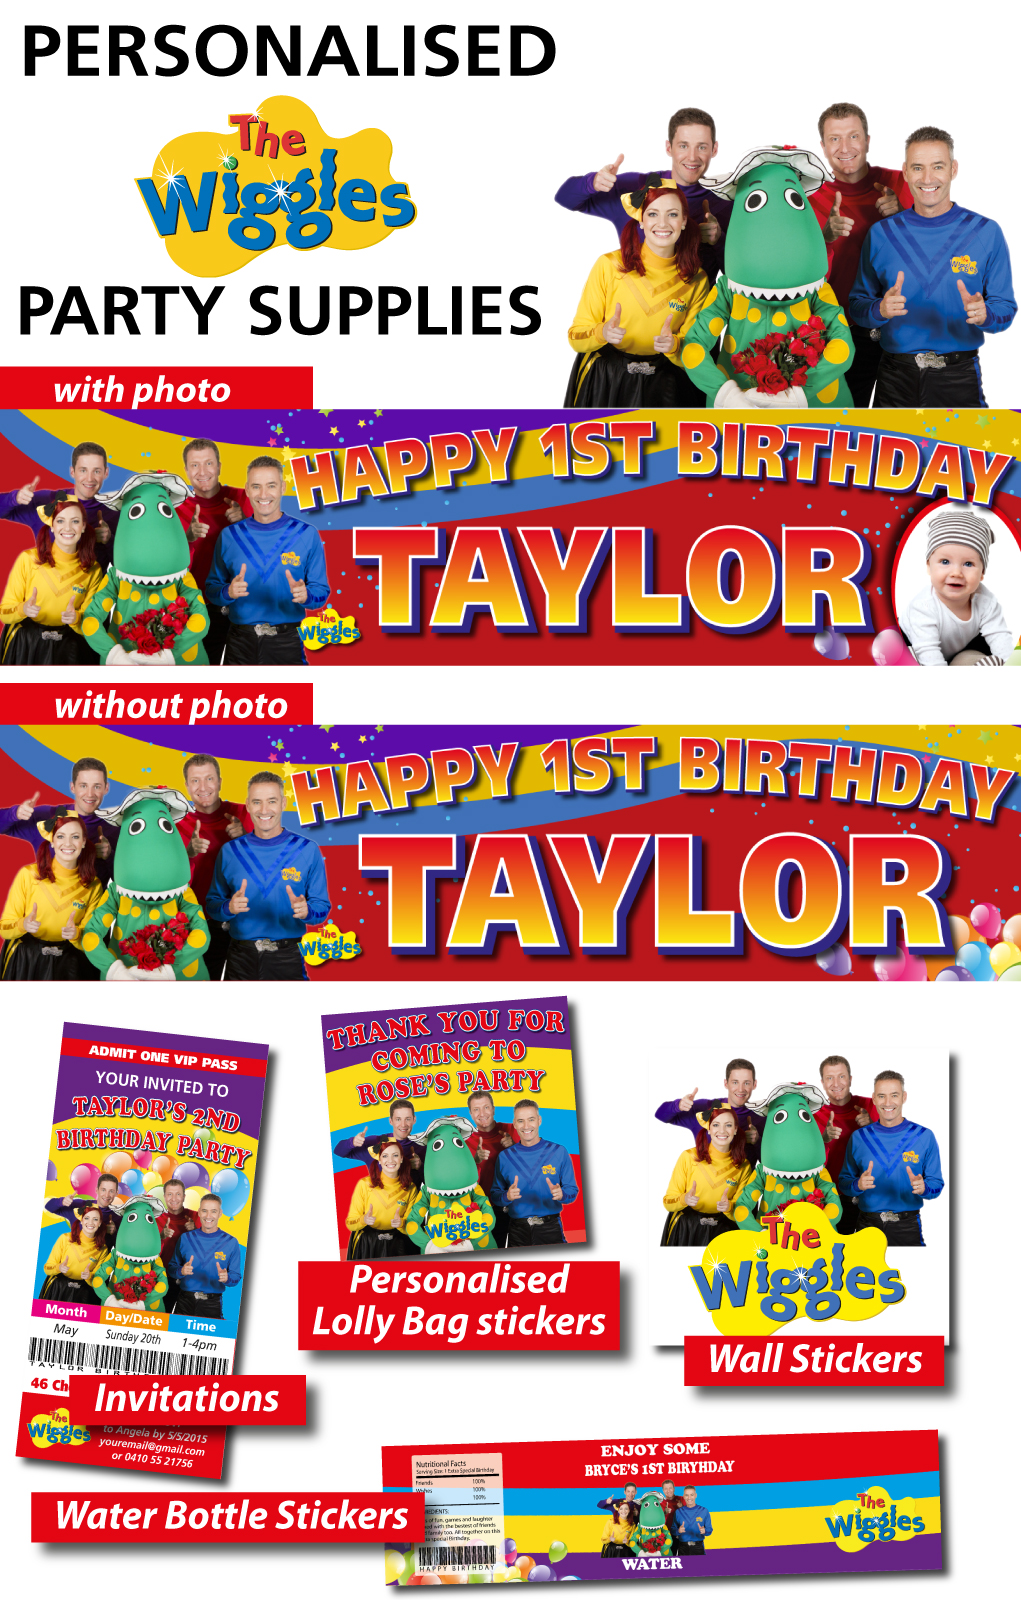 wiggles-new-birthday-banner-ebays.jpg